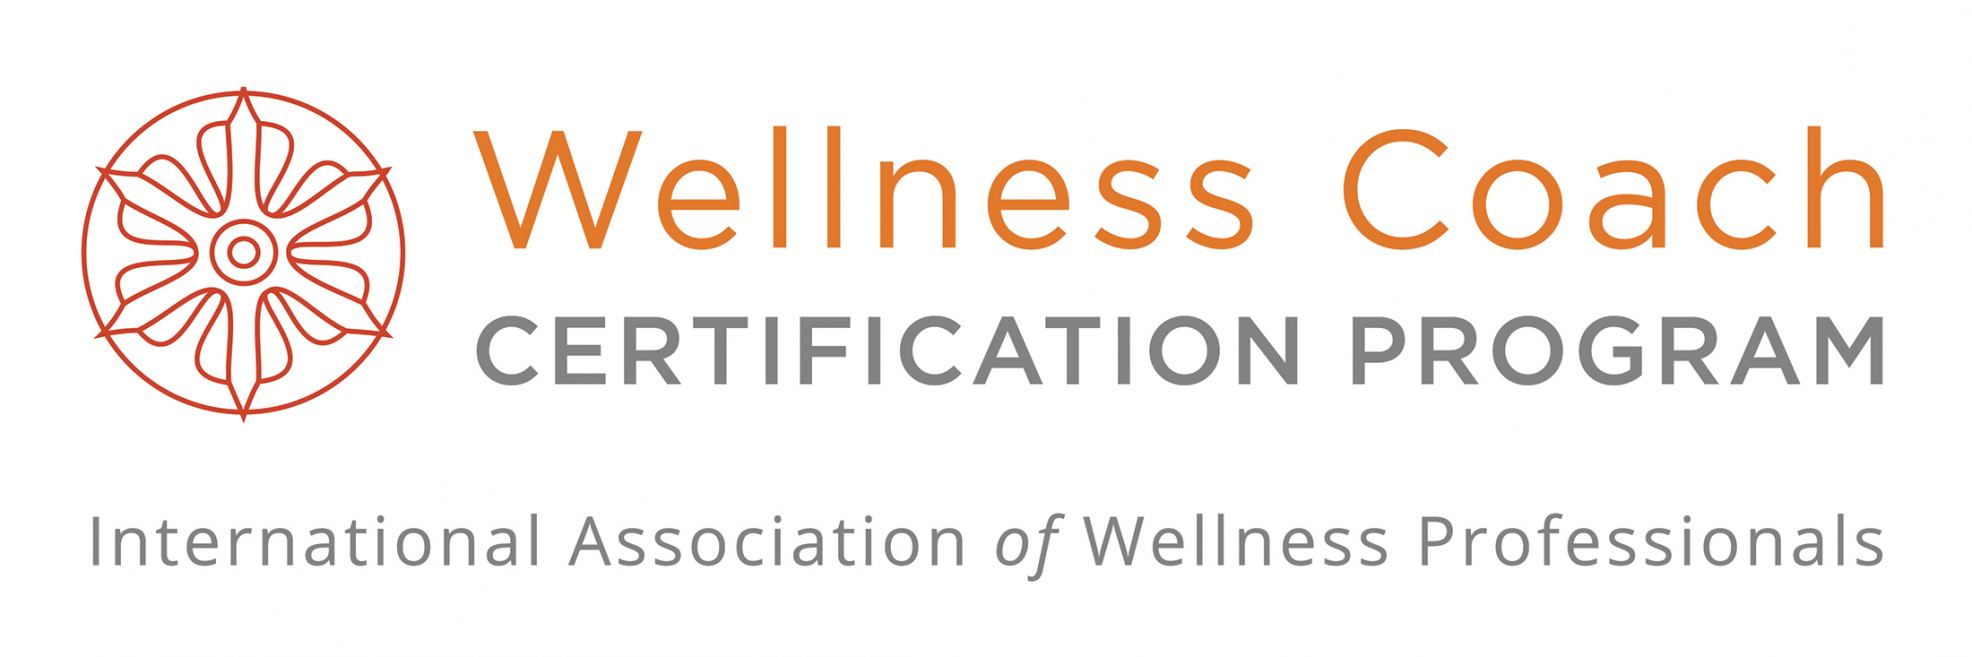 Iawp Wellness Coach Certification Program Awarded Cce Accreditat